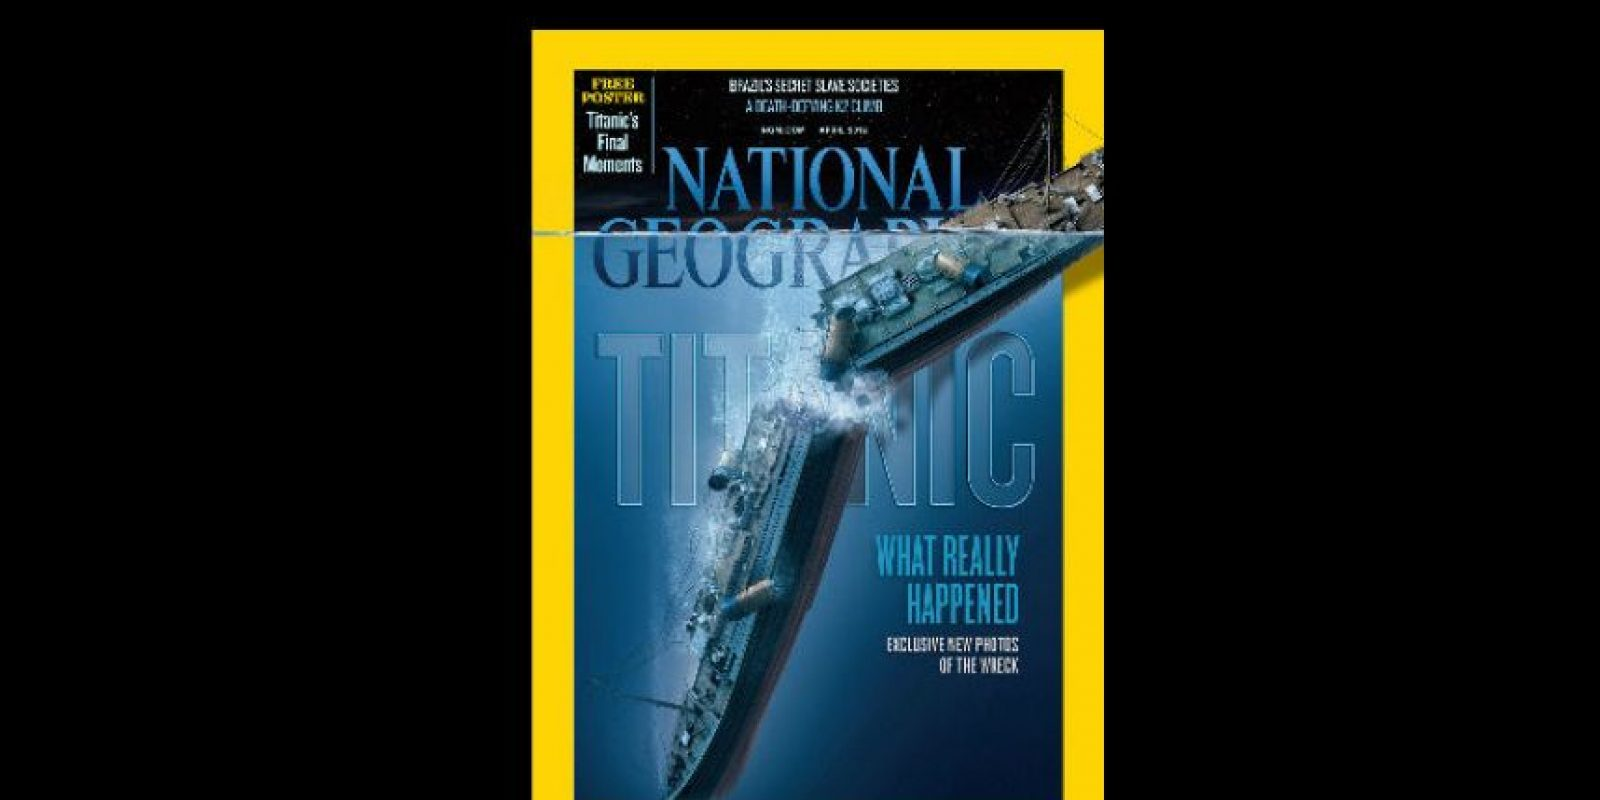 Abril 2012. National Geographic recrea la escena del hundimiento del Titanic. Foto: Vía nationalgeographic.com